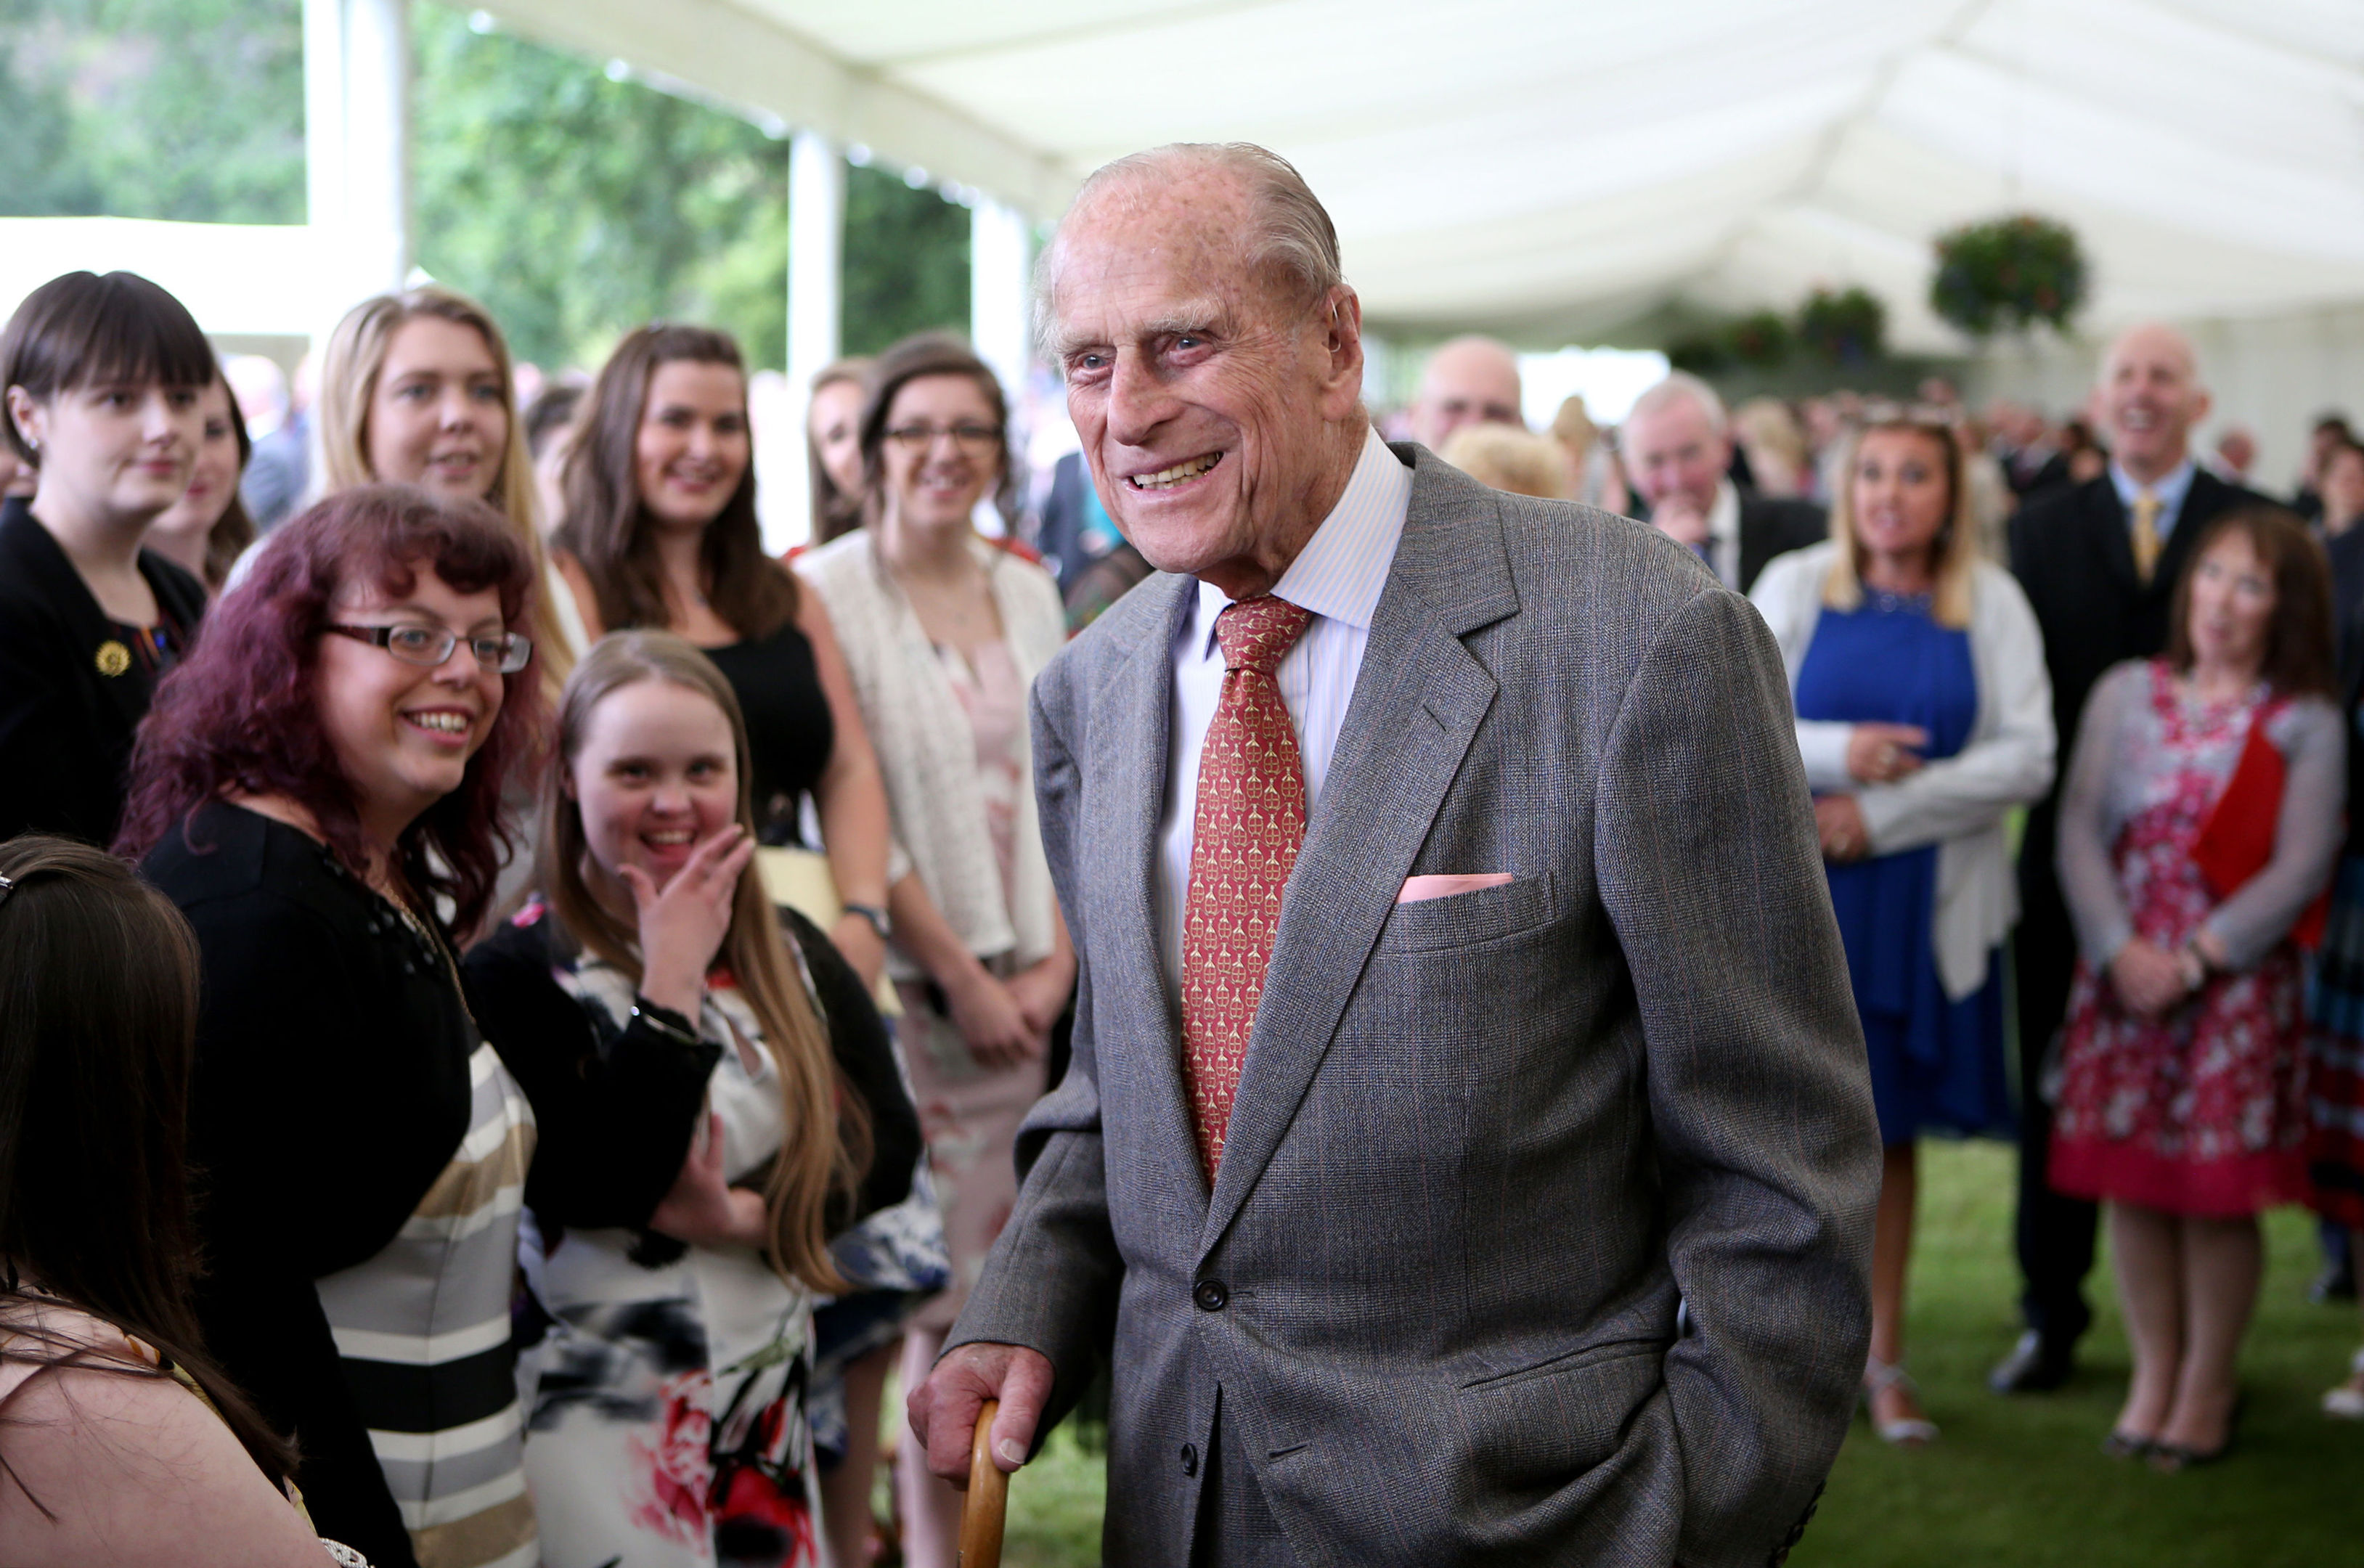 The Duke of Edinburgh attends the Presentation Reception for The Duke of Edinburgh Gold Award holders in the gardens at the Palace of Holyroodhouse in Edinburgh. (Jane Barlow/PA Wire)